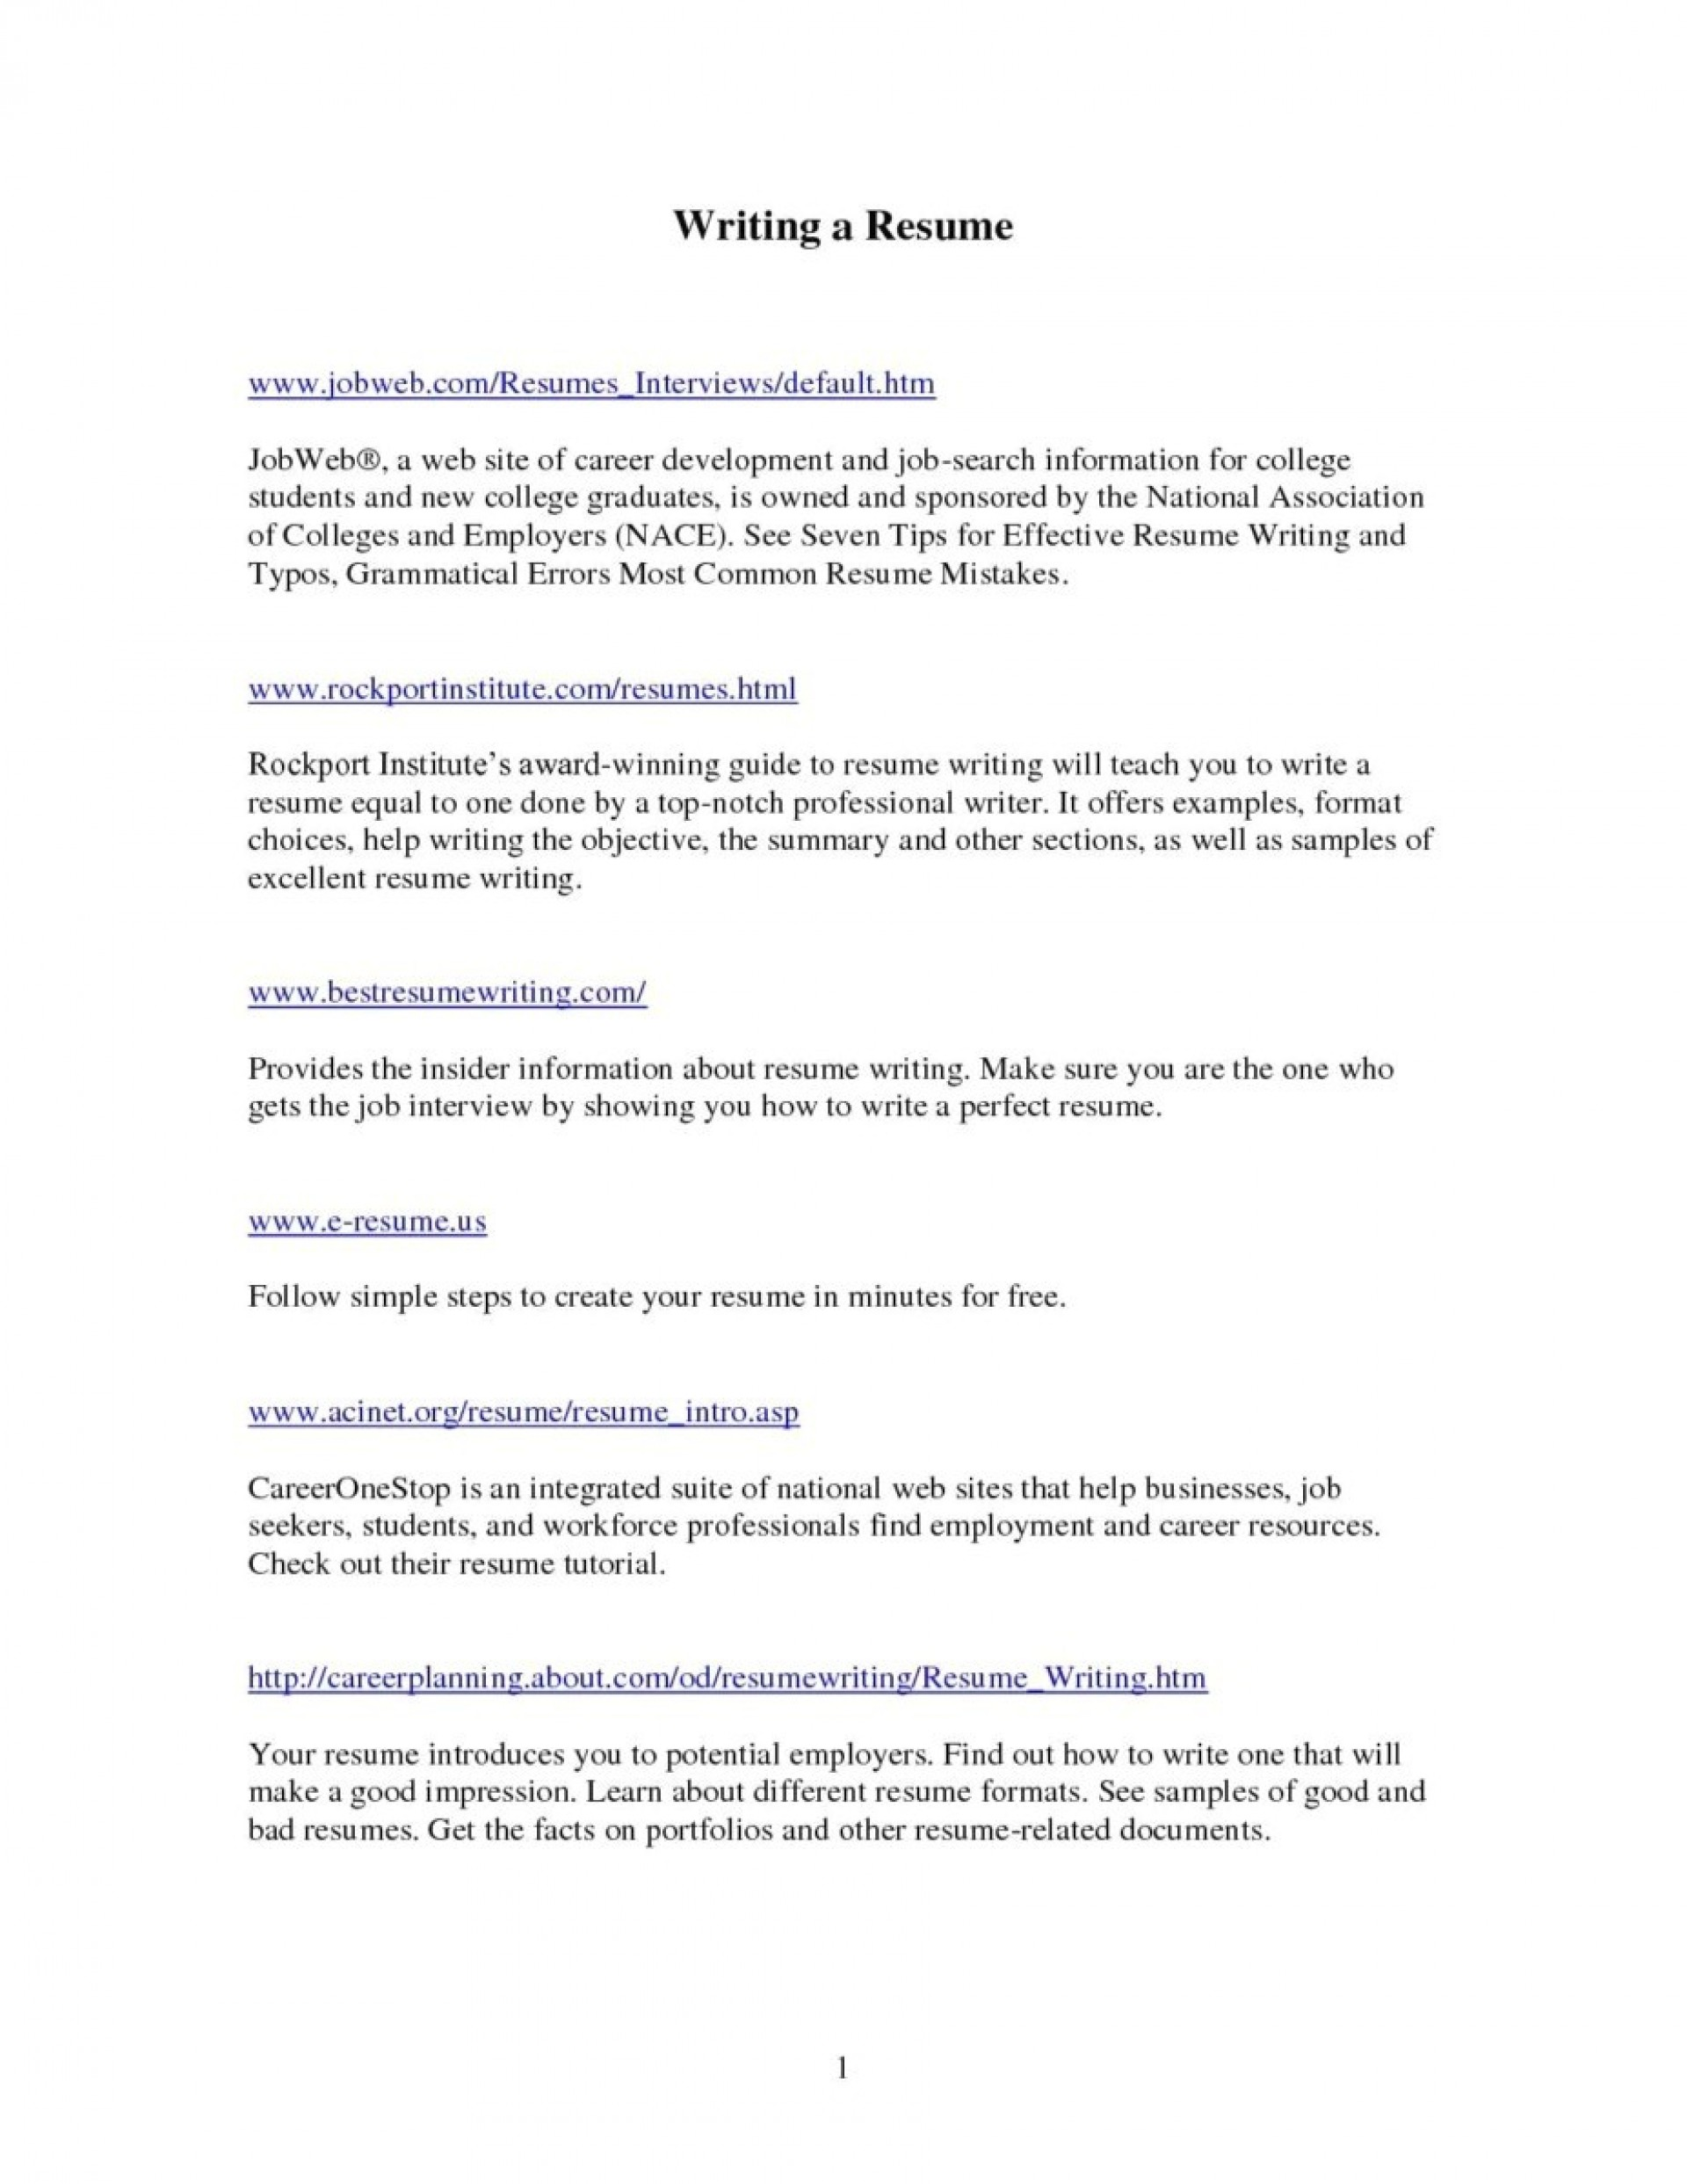 005 Research Paper How To Do Outline In Apa Resume Writing